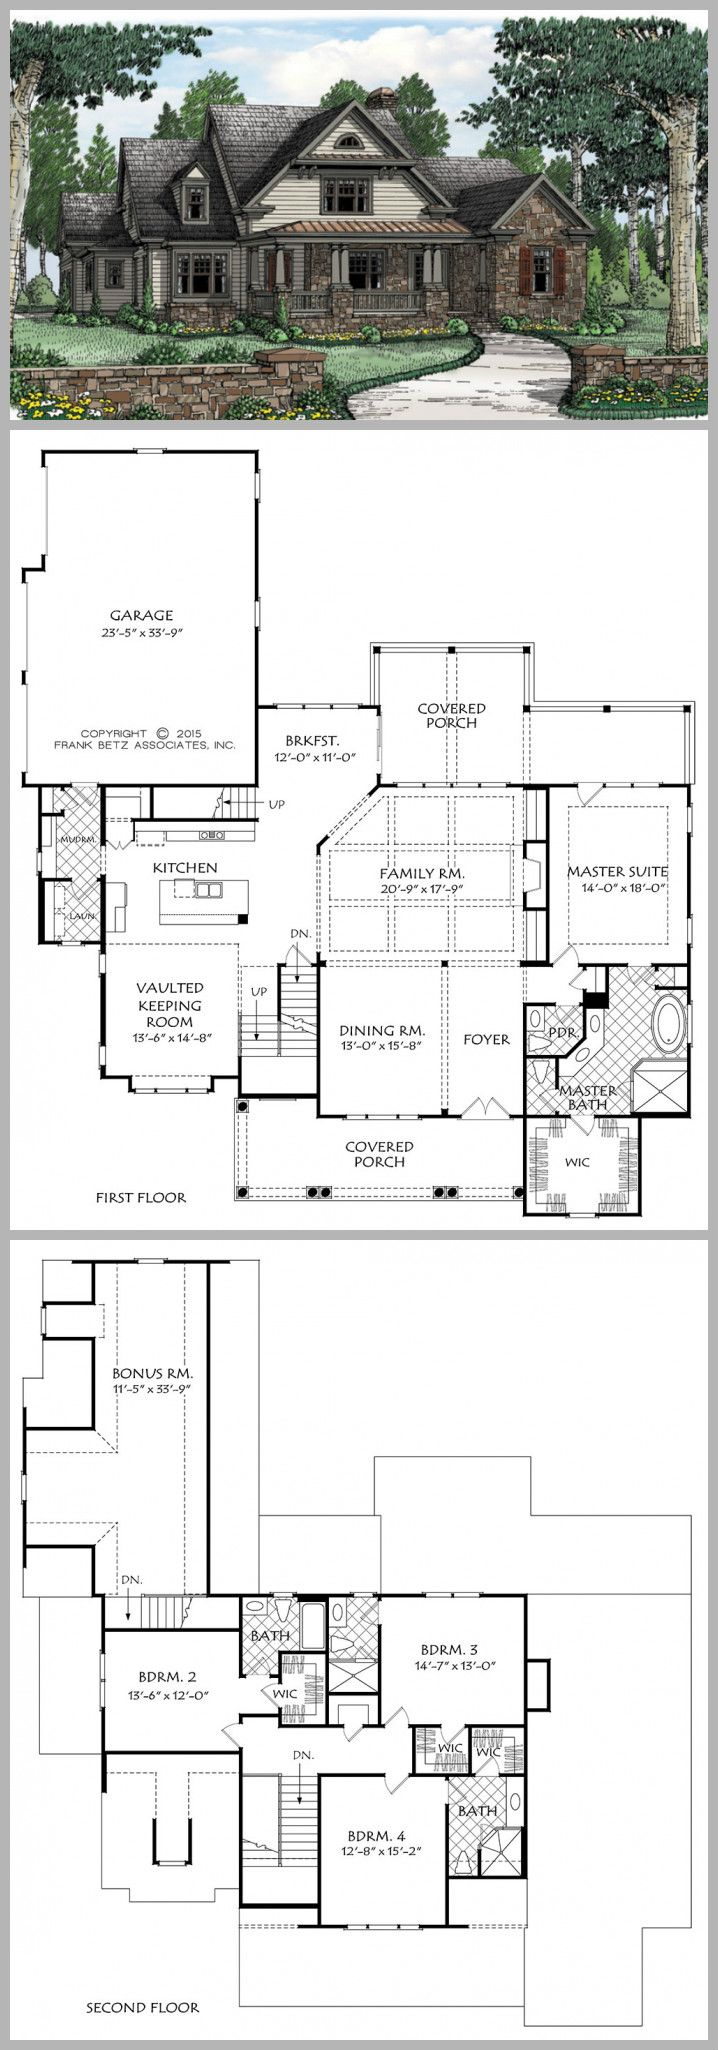 80 besten PLAN OF THE WEEK Bilder auf Pinterest | Haus grundrisse ...